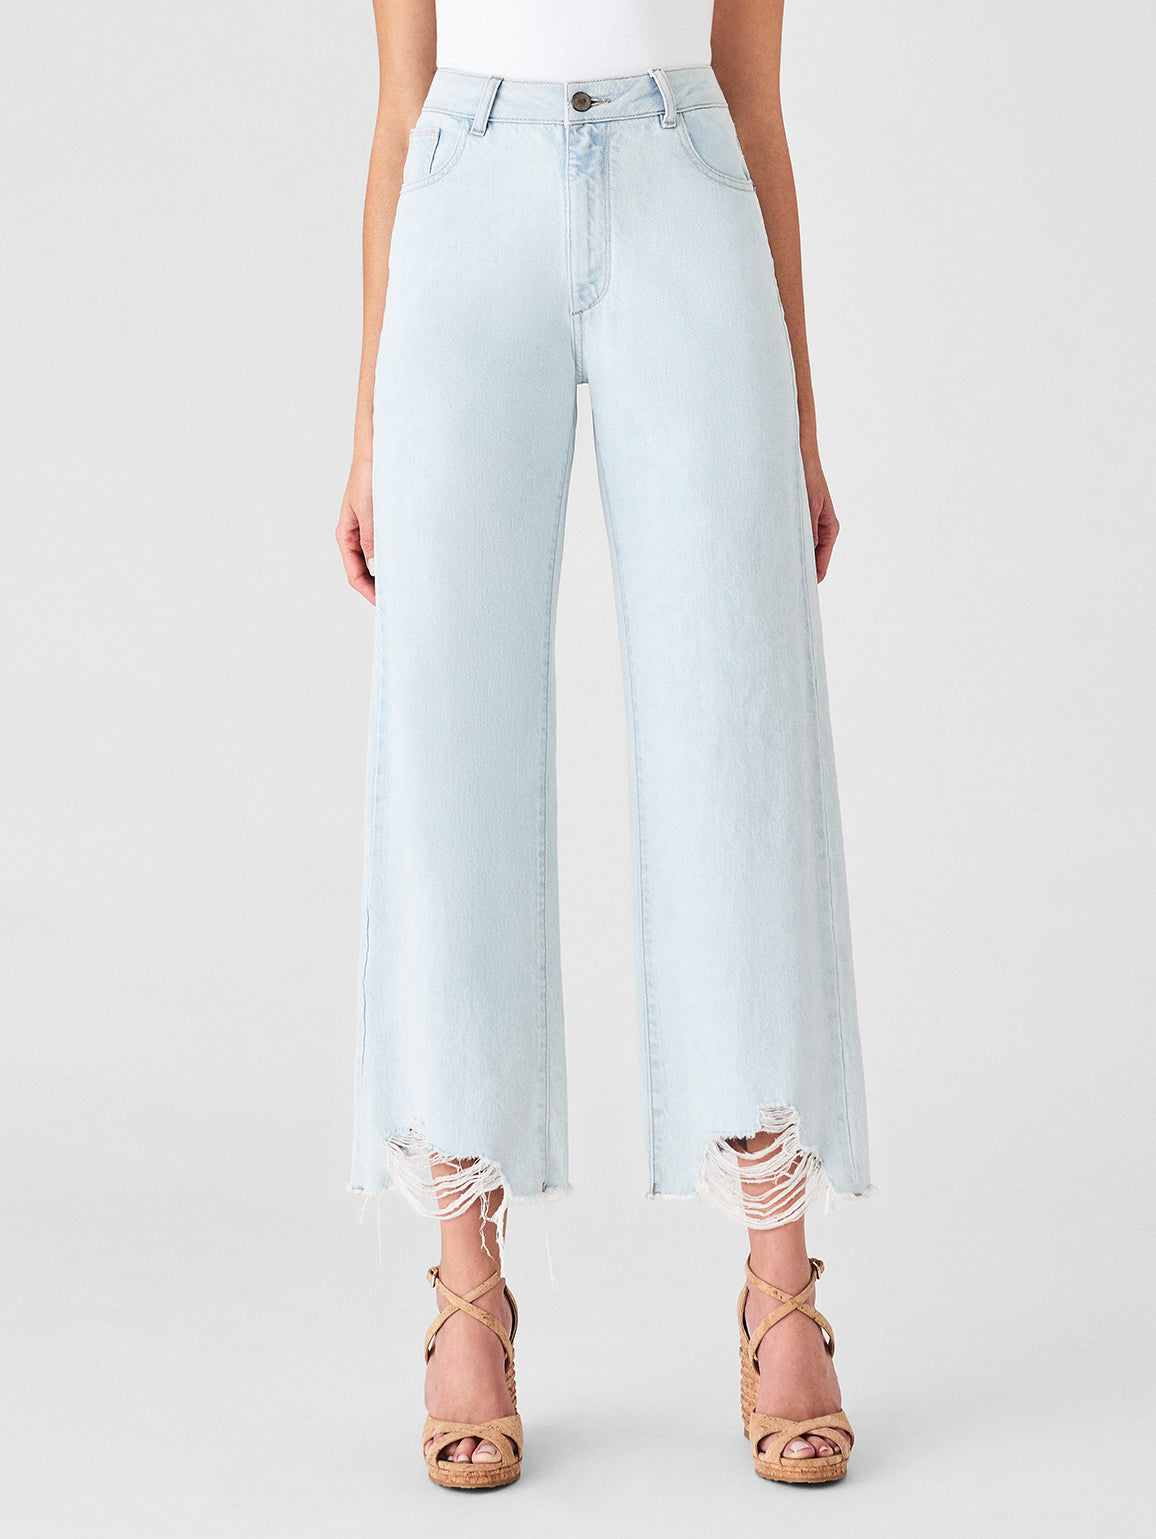 Hepburn High Rise Wide Leg | Palermo